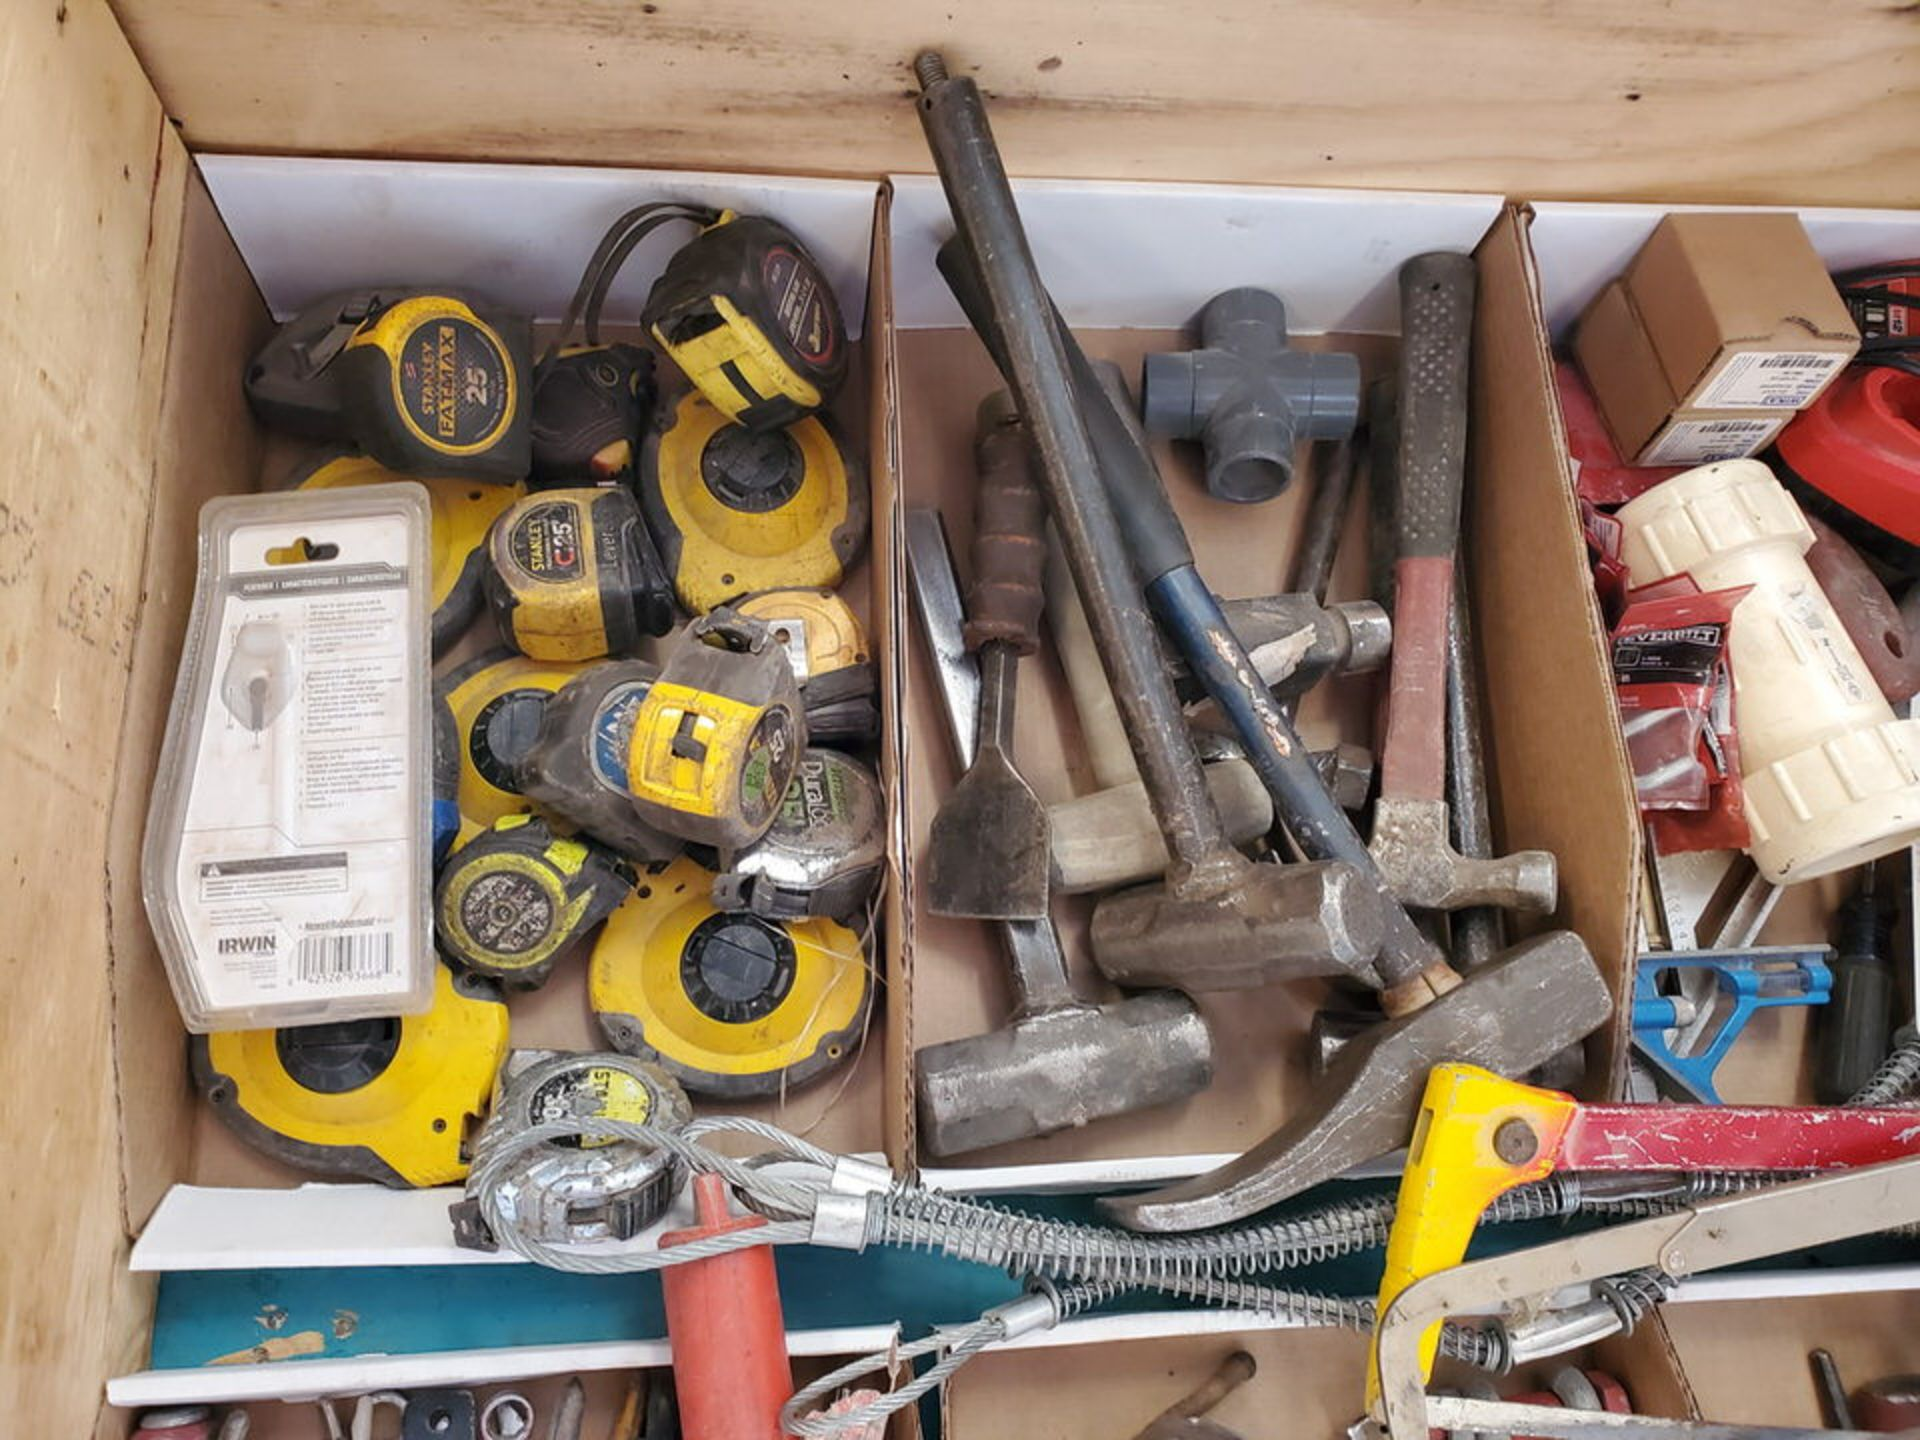 Assorted. Tooling To Include But Not Limited To: Sockets, Miller Foot Pedal, Hand Saws, Hammers, - Image 5 of 7